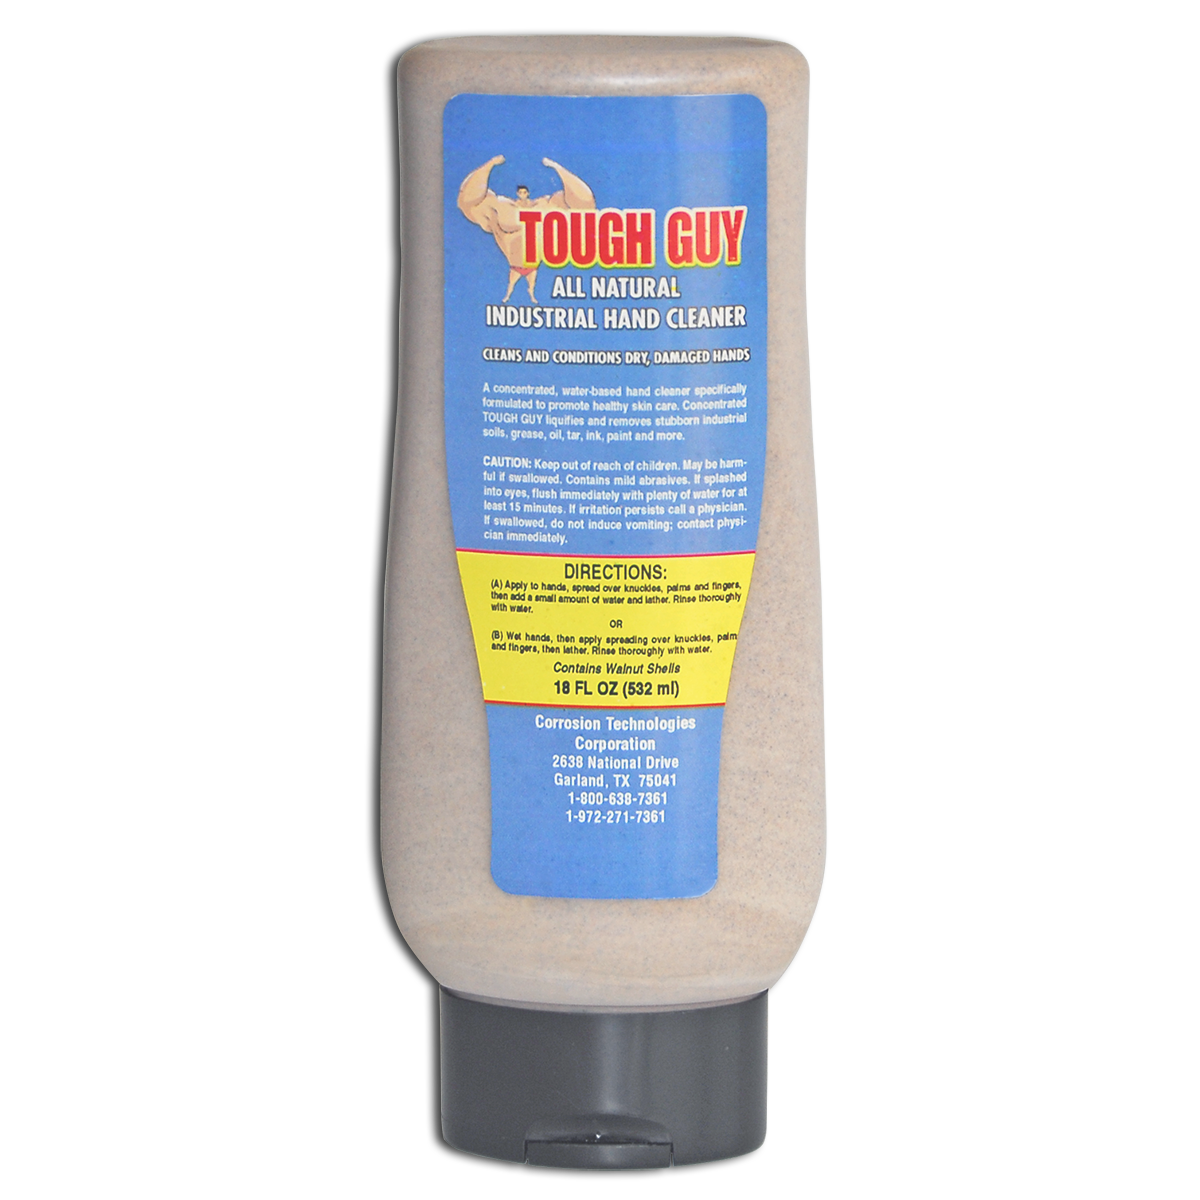 Tough Guy hand cleaner